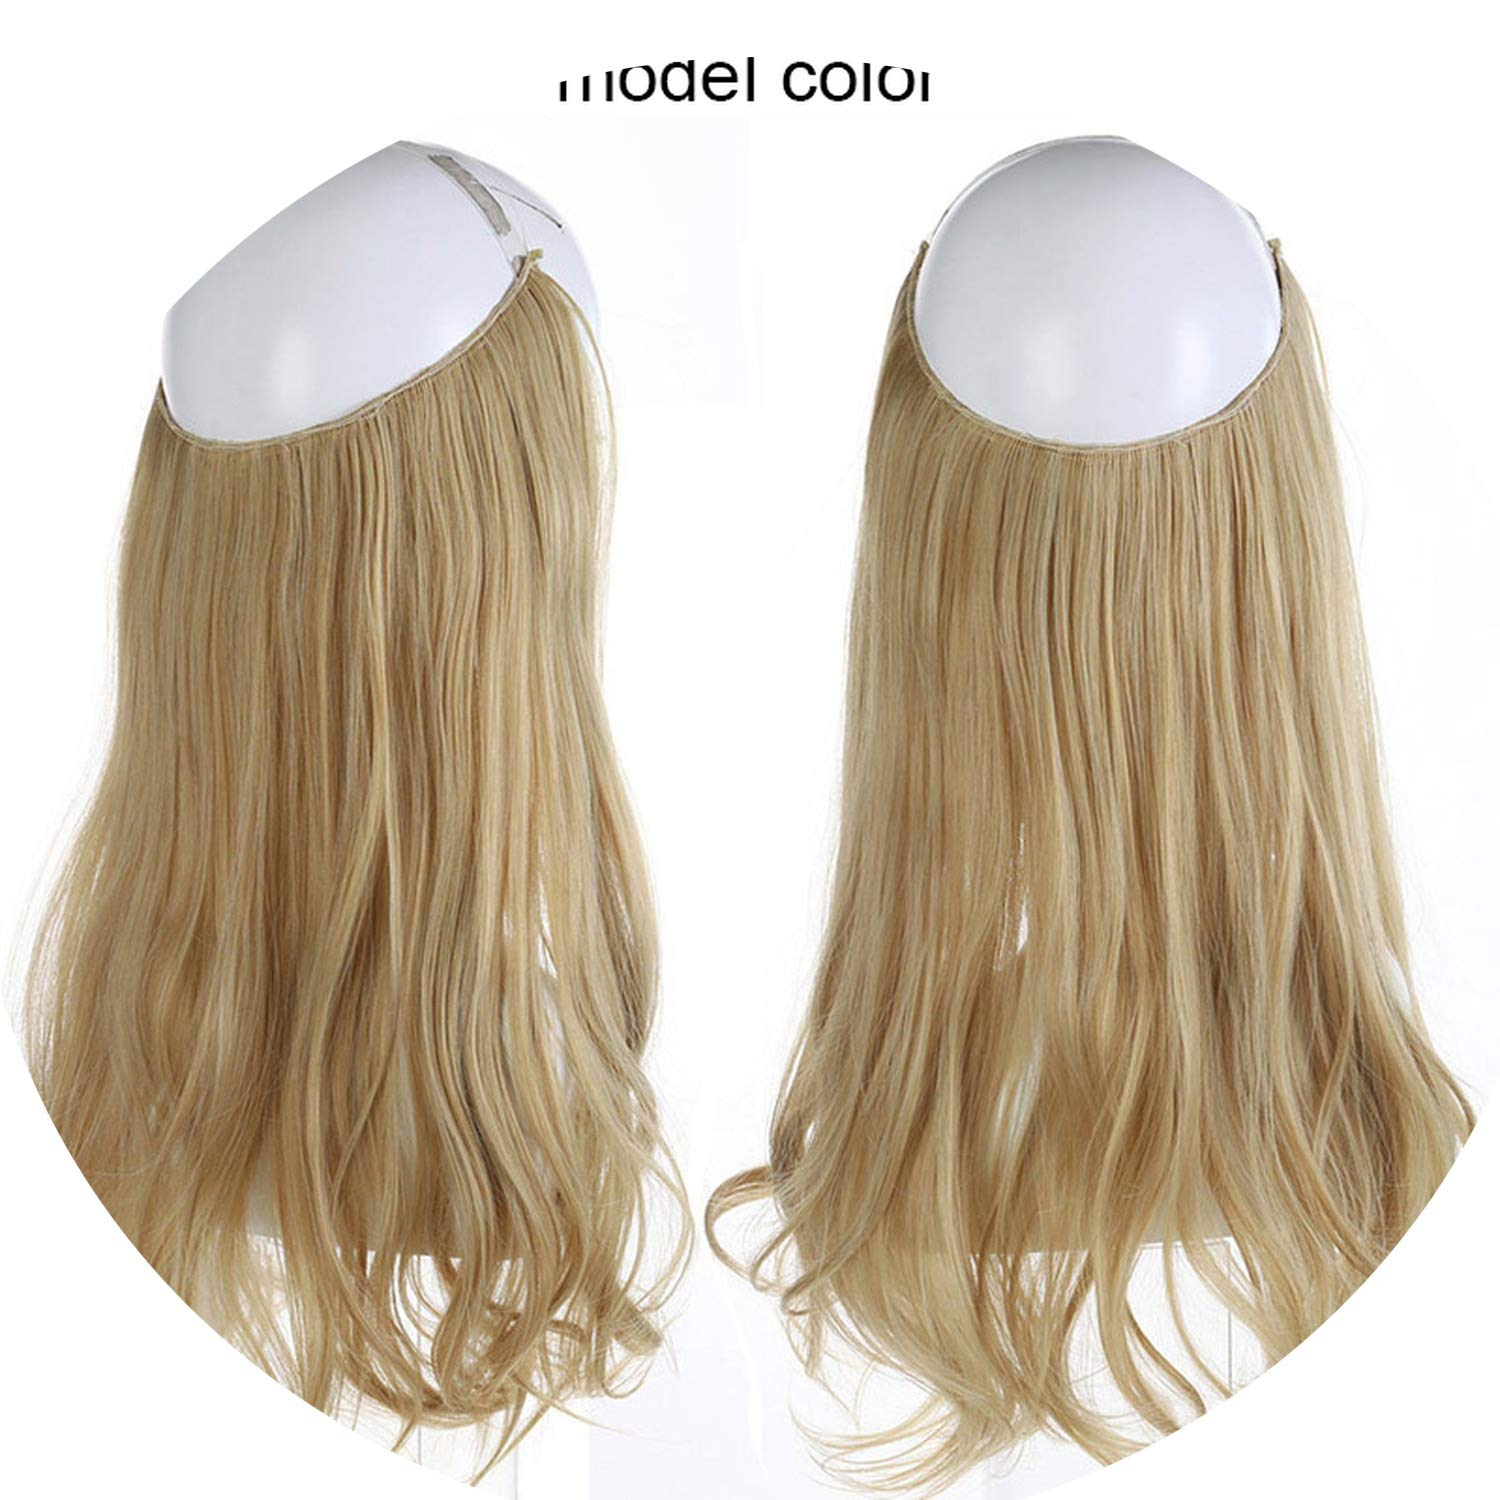 14'' 16'' 18'' Synthetic Flip In Natural Wave Halo Hair Extensions Invisible Hidden Secret Wire Crown Headband Hair Extension,Light Ash Blonde,14inches,China by Heat-Tracing